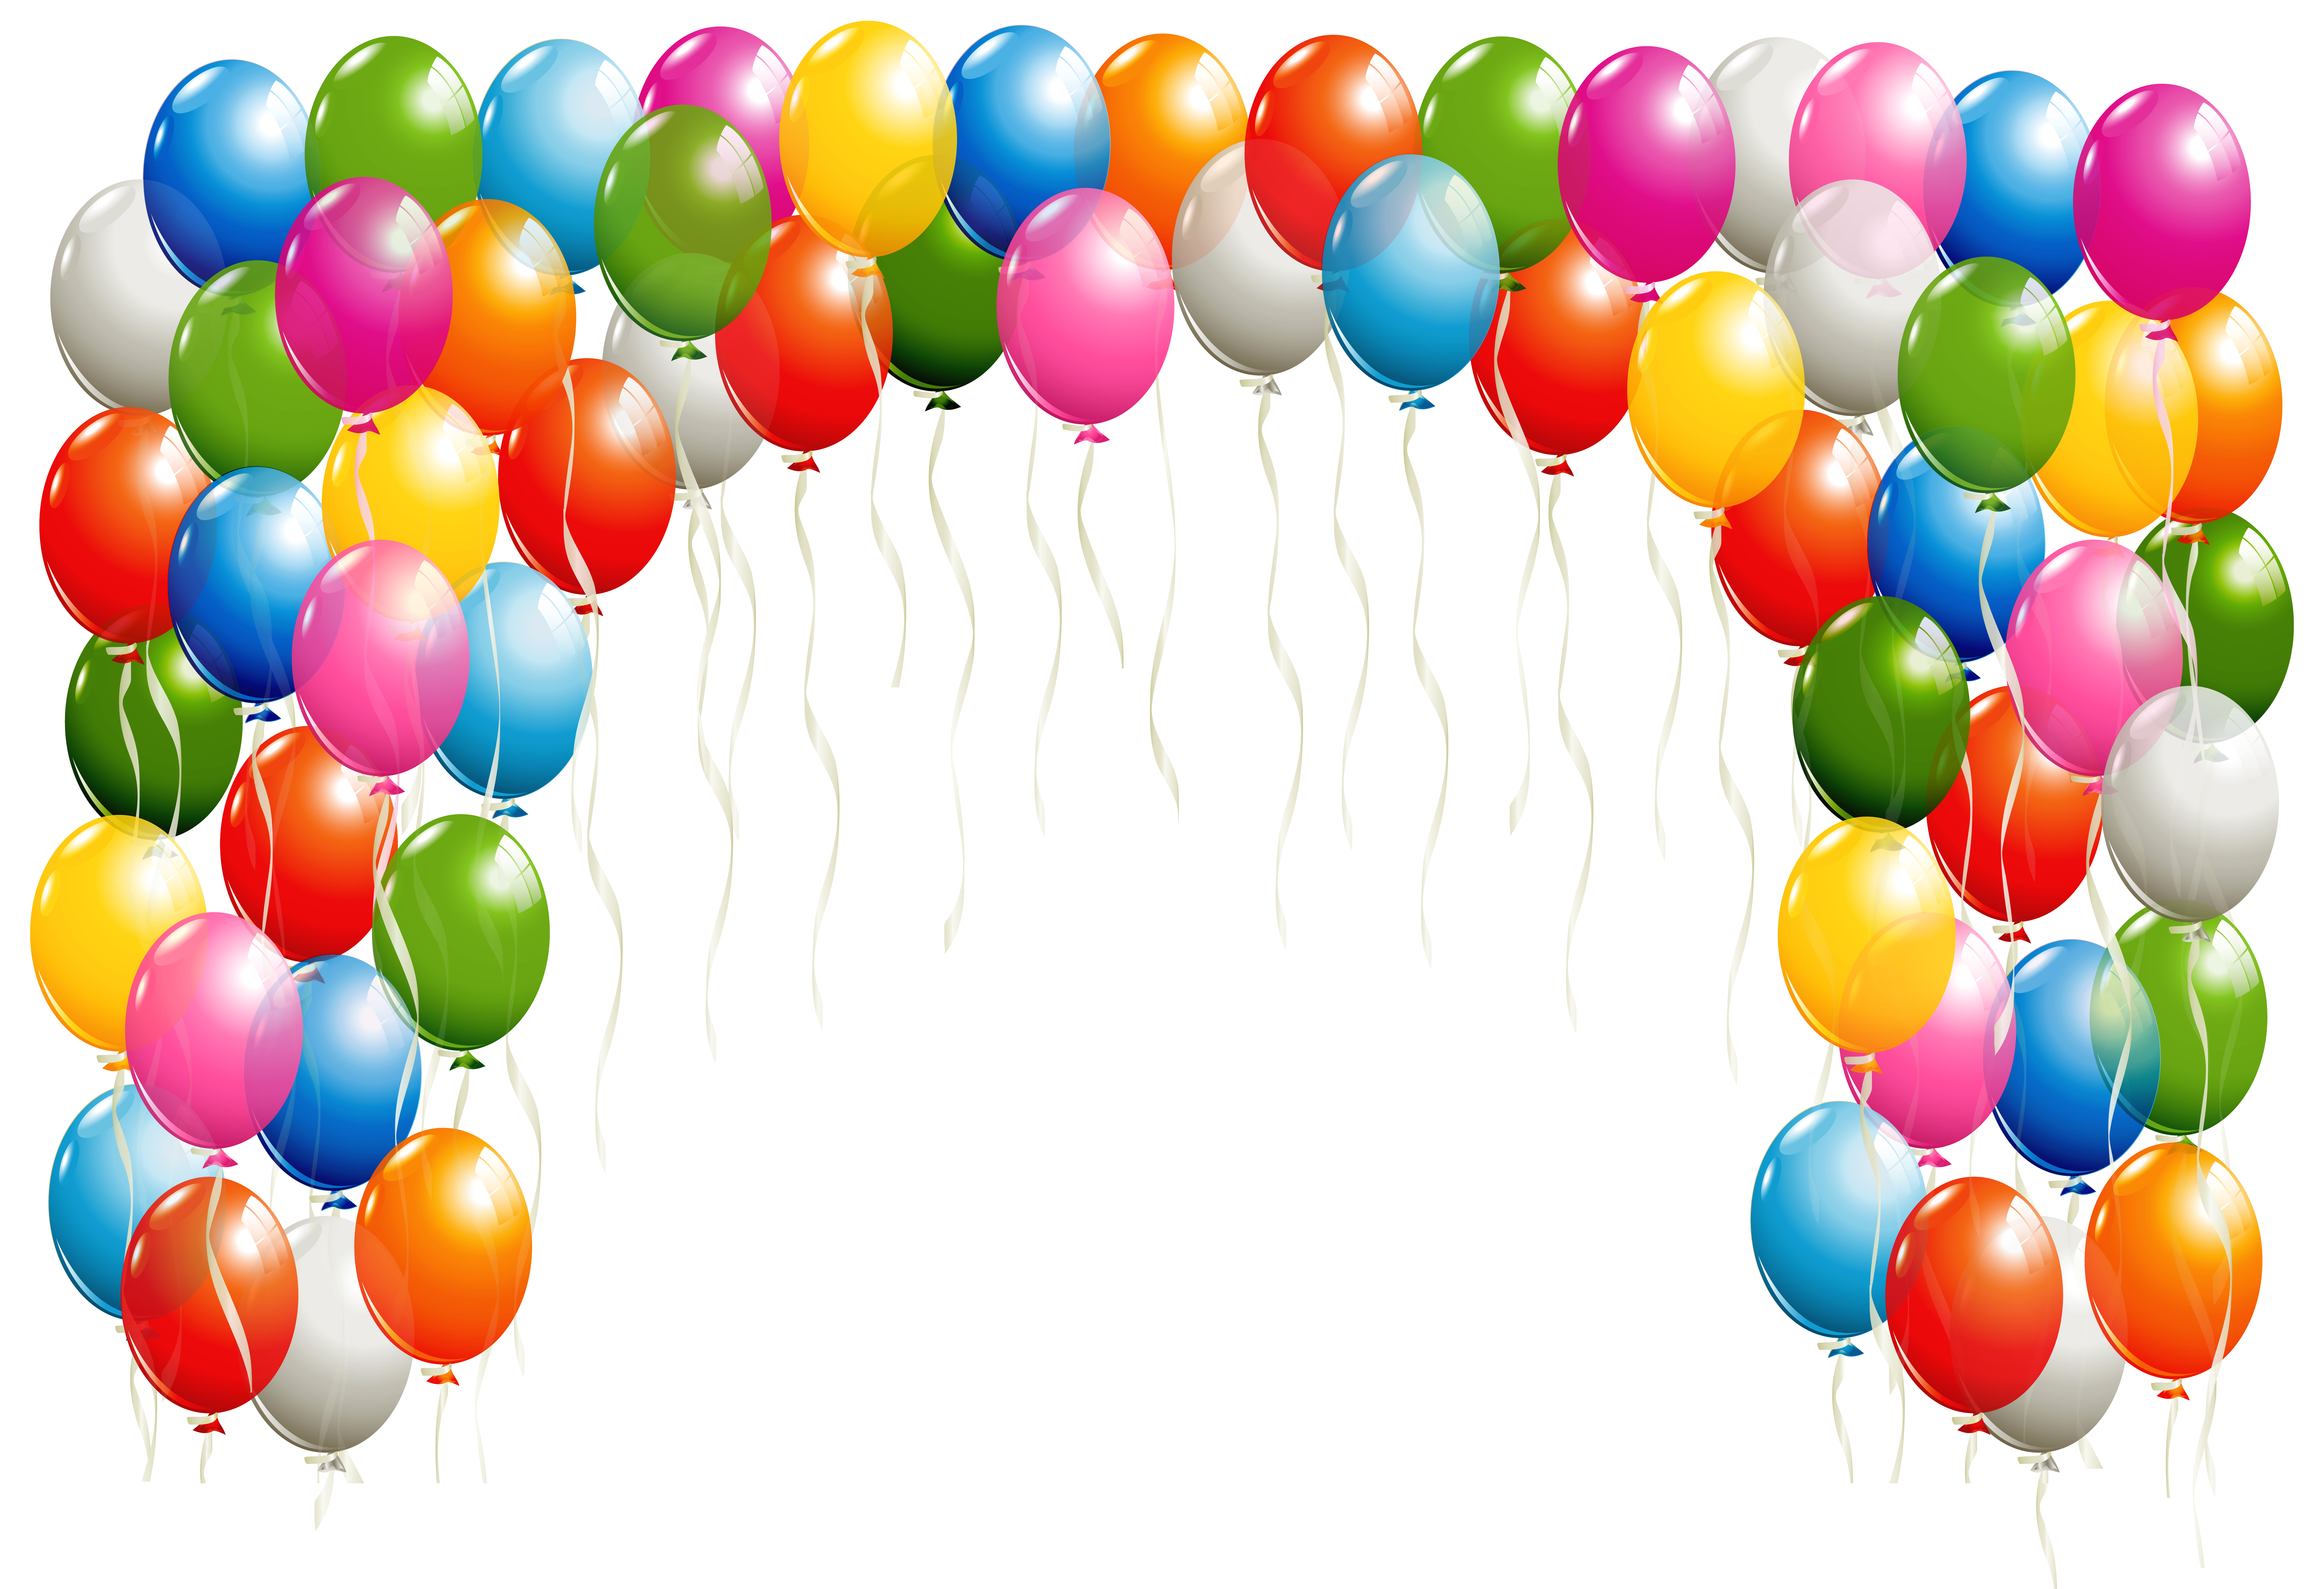 High definition balloons png. Transparent arch clipart image